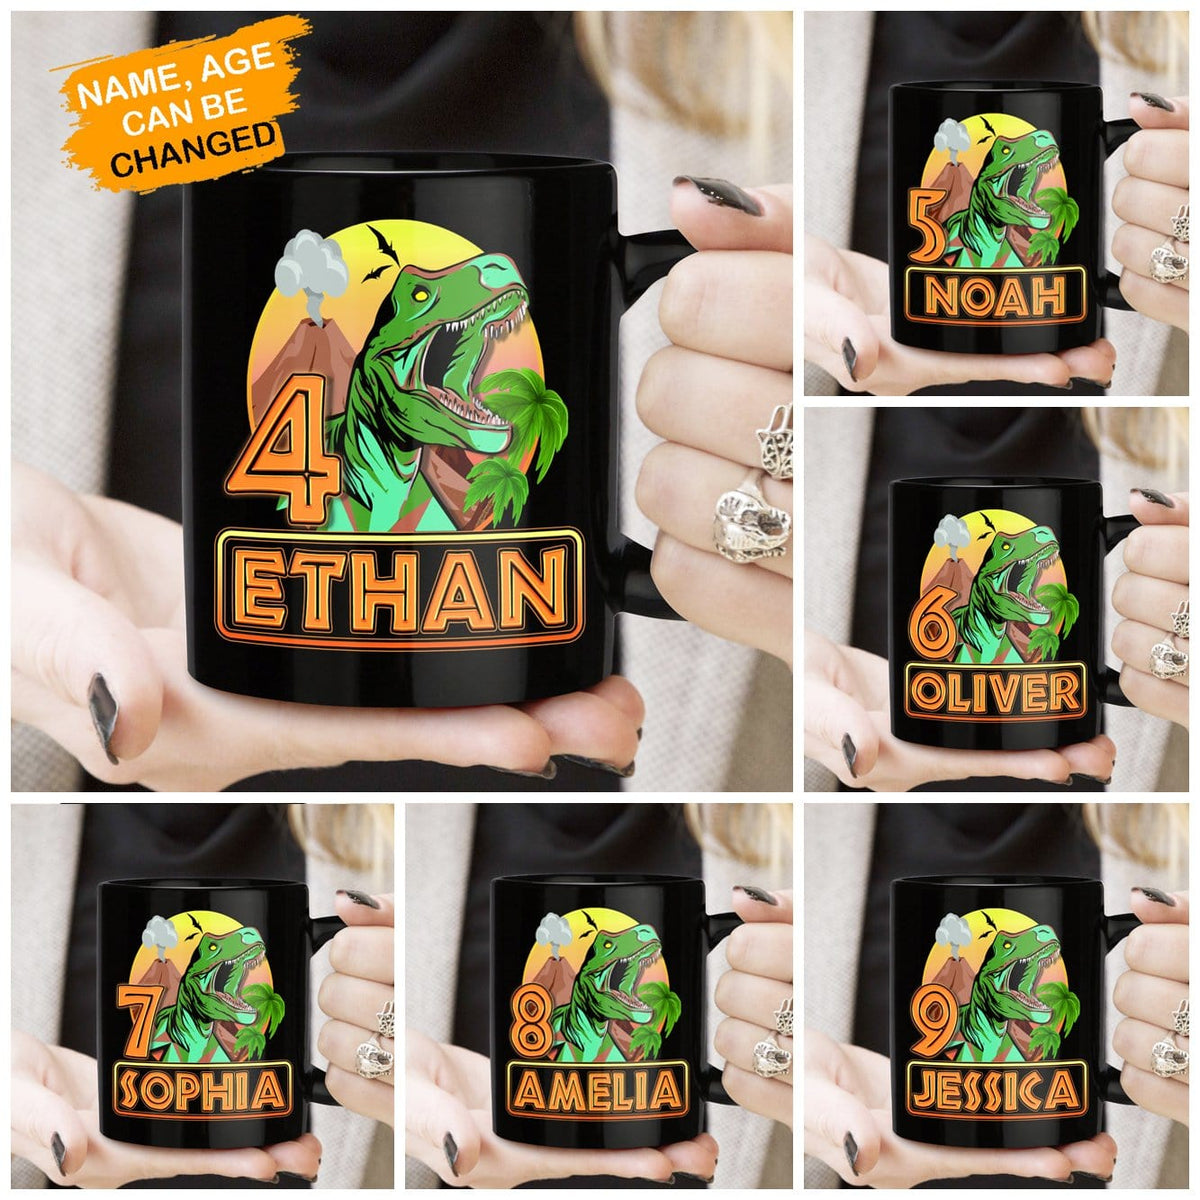 Pemola, dinosaurs for kids, personalized gifts, kids birthday party, gifts for sons from mothers, black coffee mug